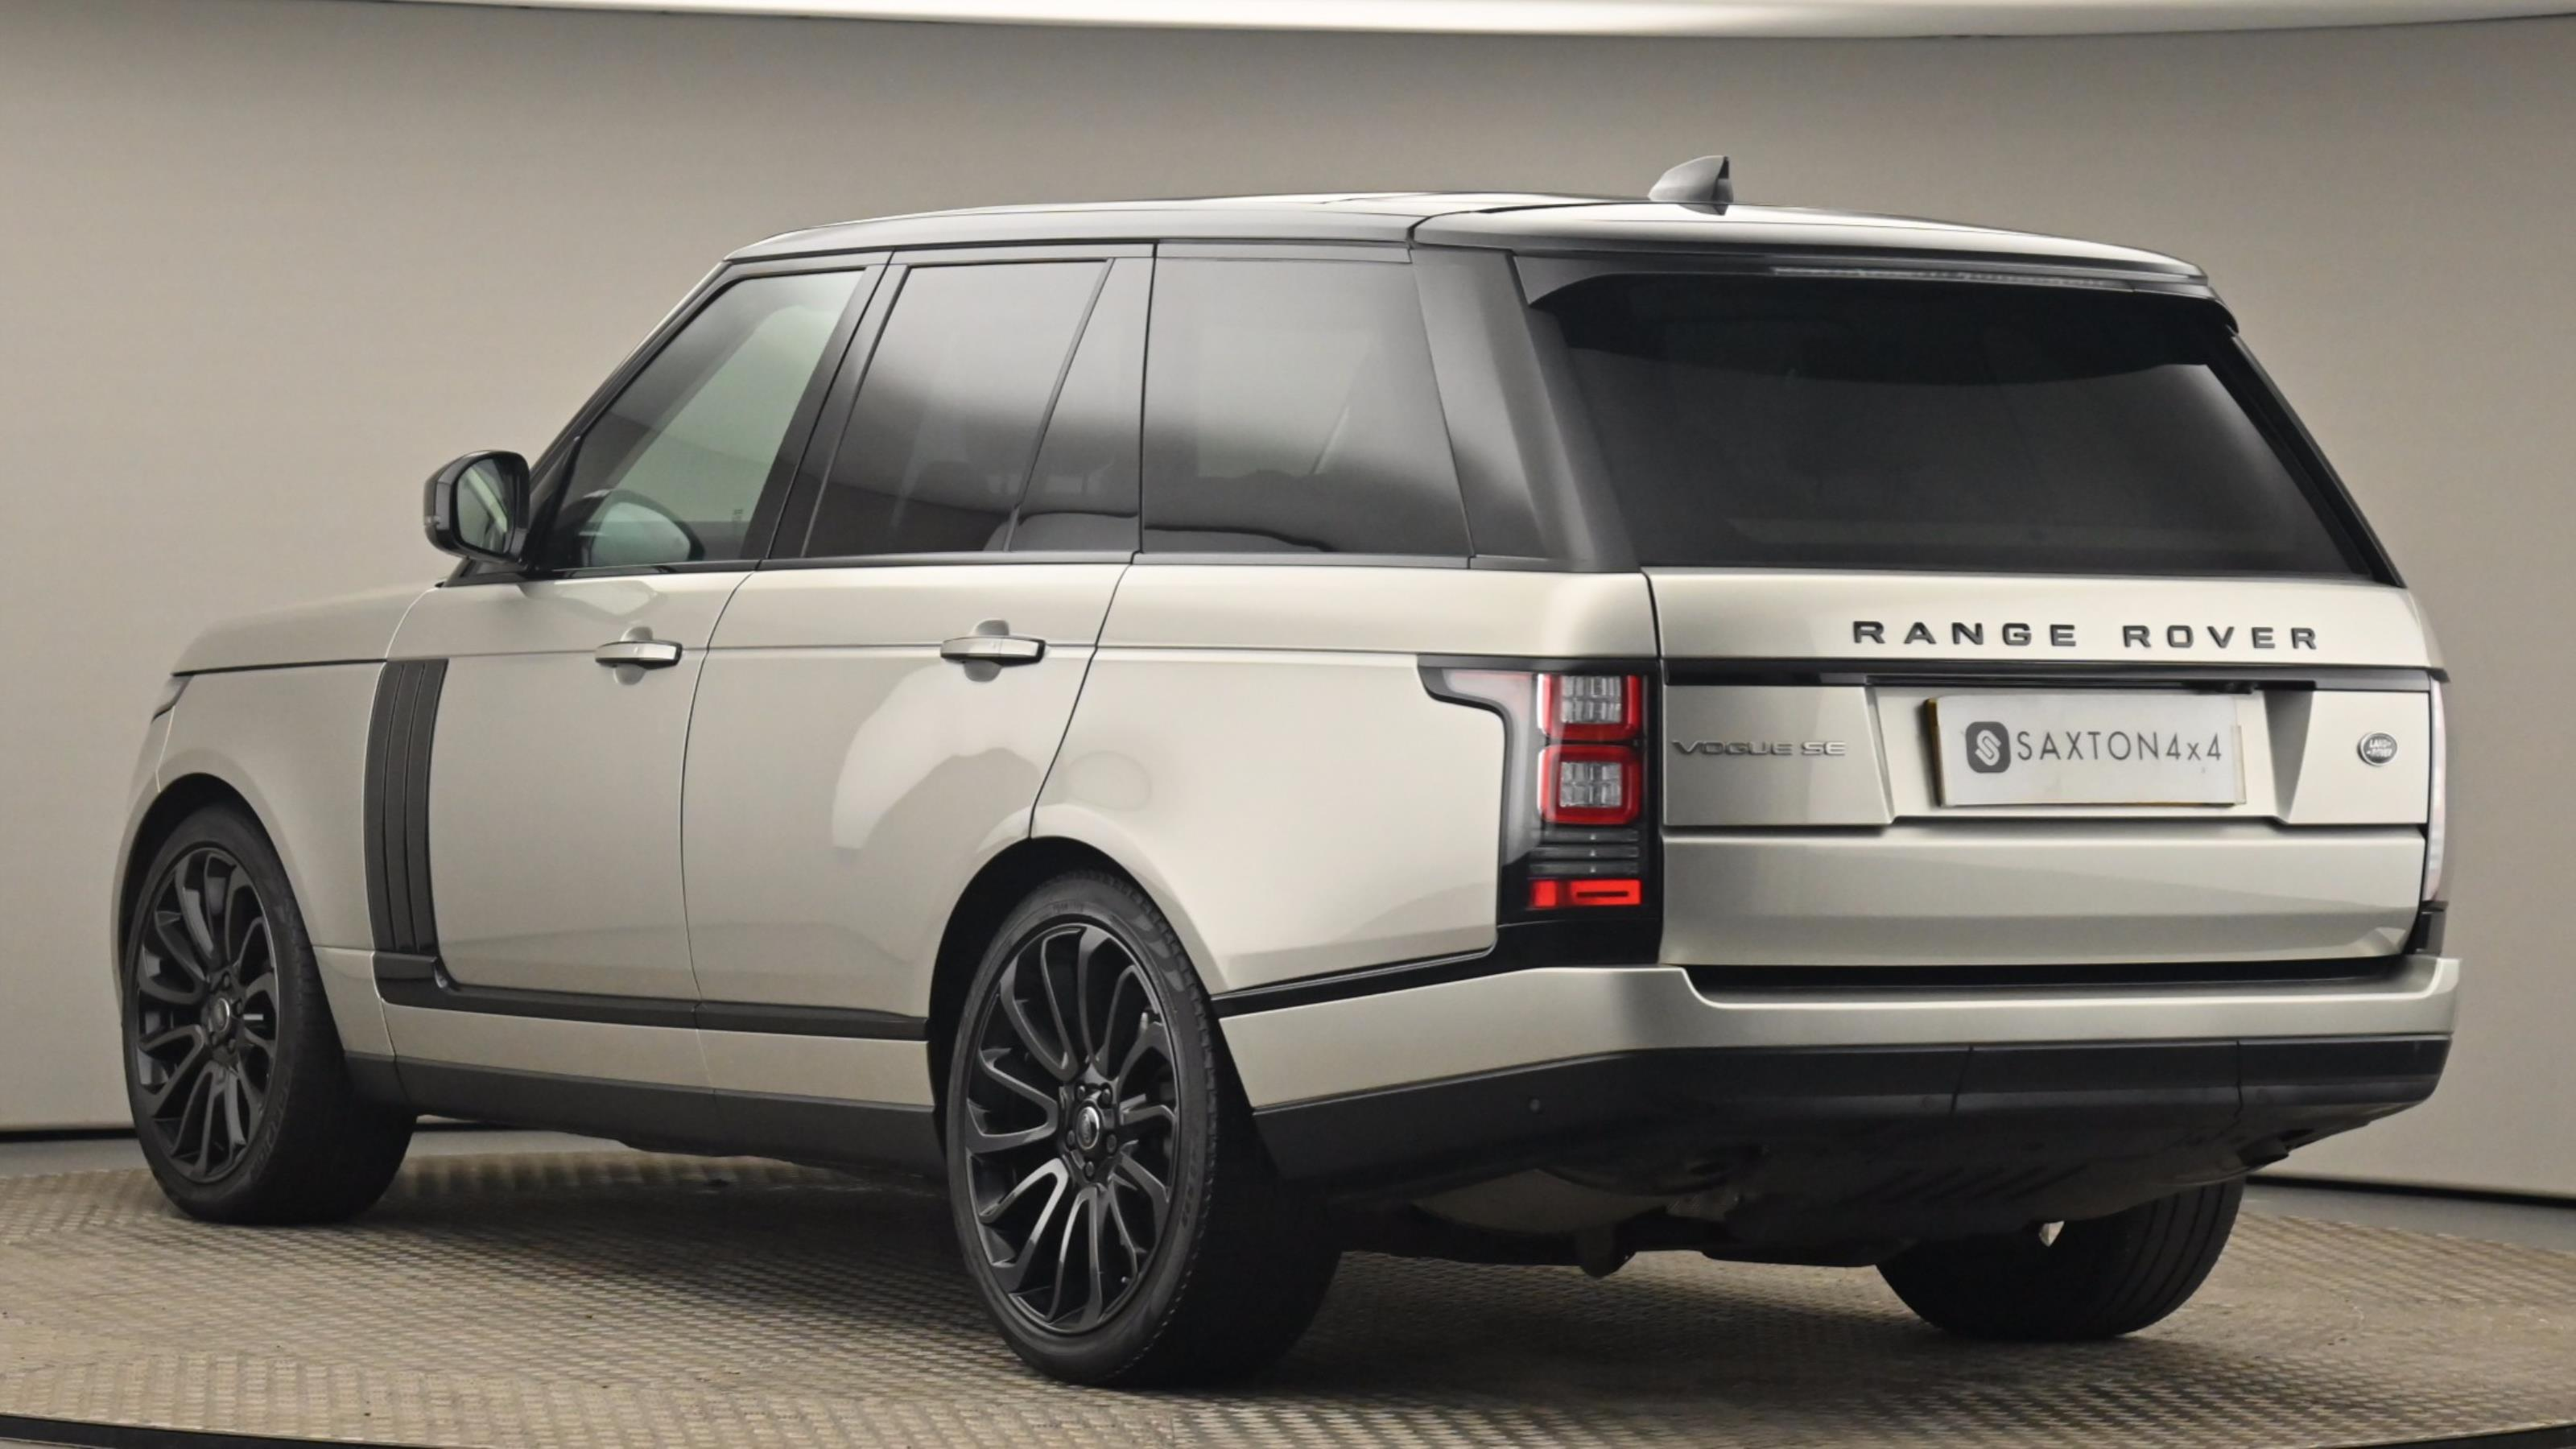 Used 2017 Land Rover RANGE ROVER 3.0 TDV6 Vogue SE 4dr Auto GOLD at Saxton4x4